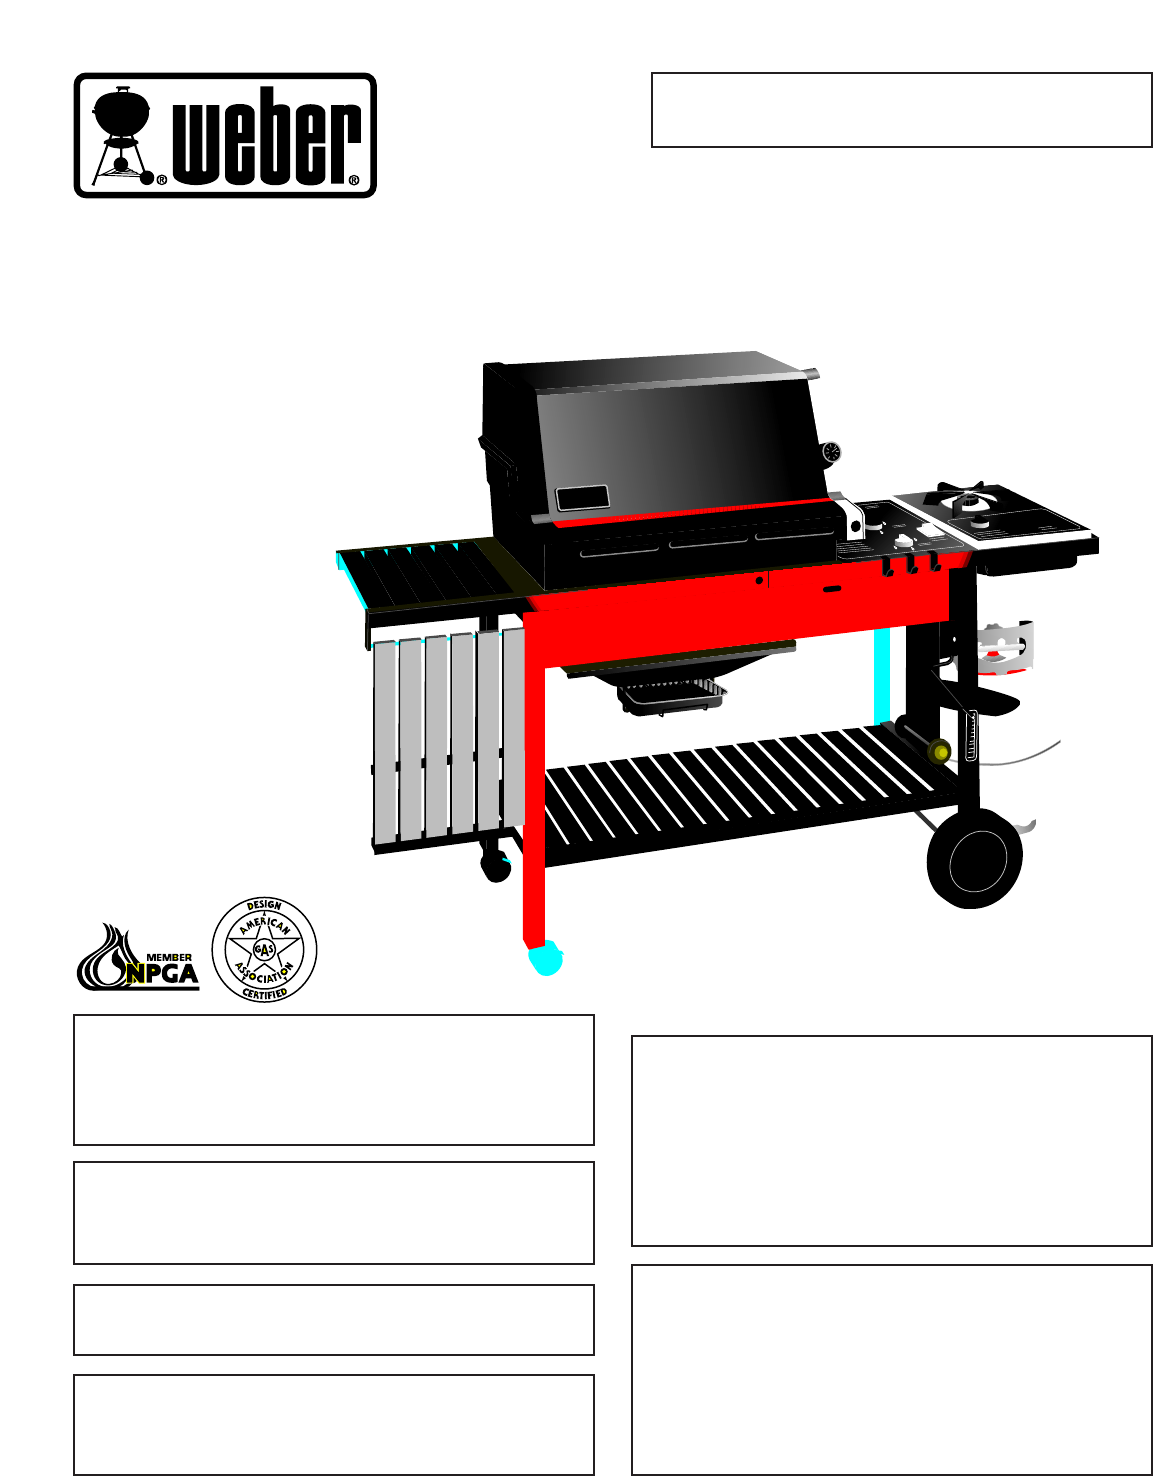 weber gas grill 3000 user guide. Black Bedroom Furniture Sets. Home Design Ideas